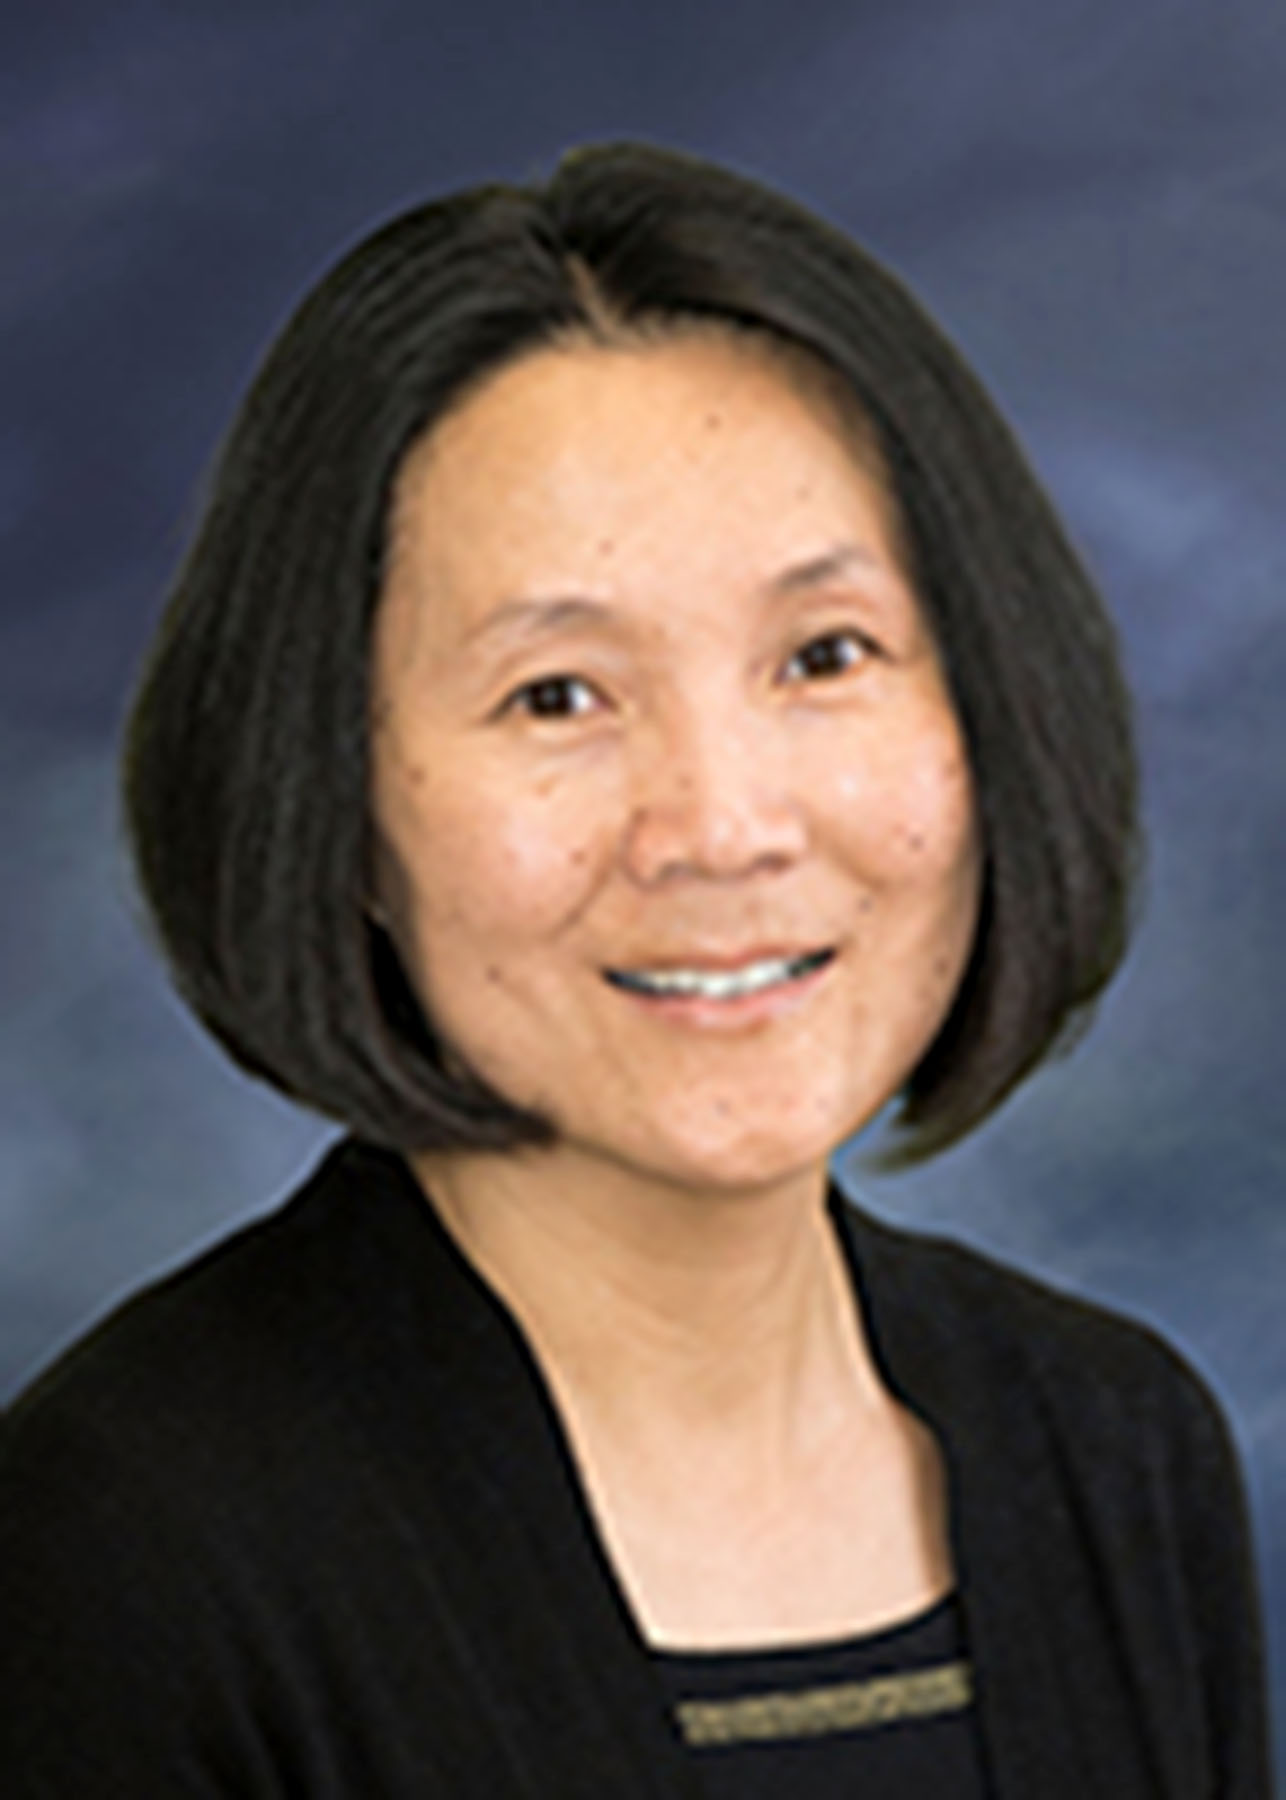 Jie Chen, Carle Illinois College of Medicine, University of Illinois at Urbana-Champaign